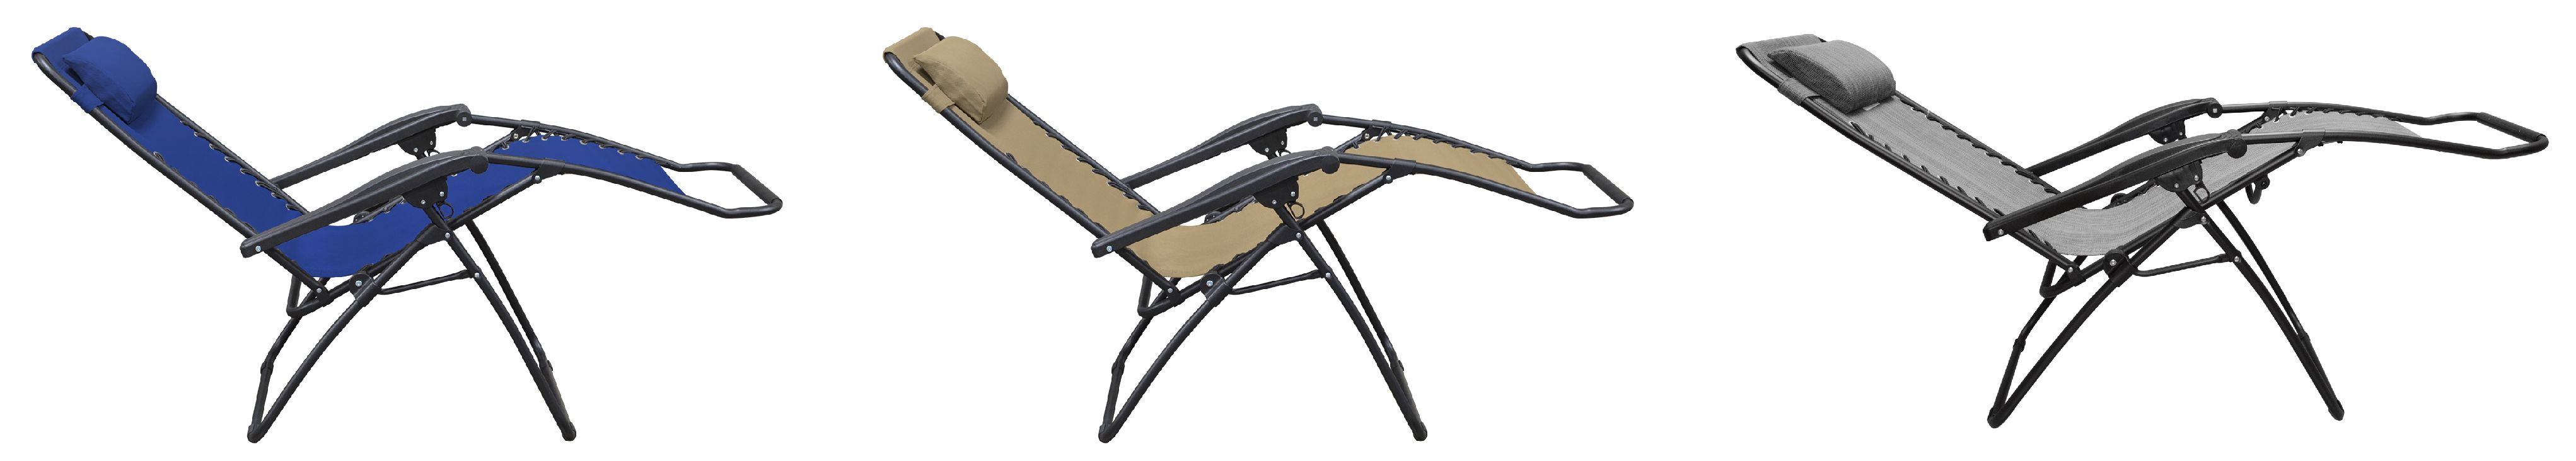 Zero Gravity Outdoor Lounge Chair Costco Timber Ridge Zero Gravity Chair